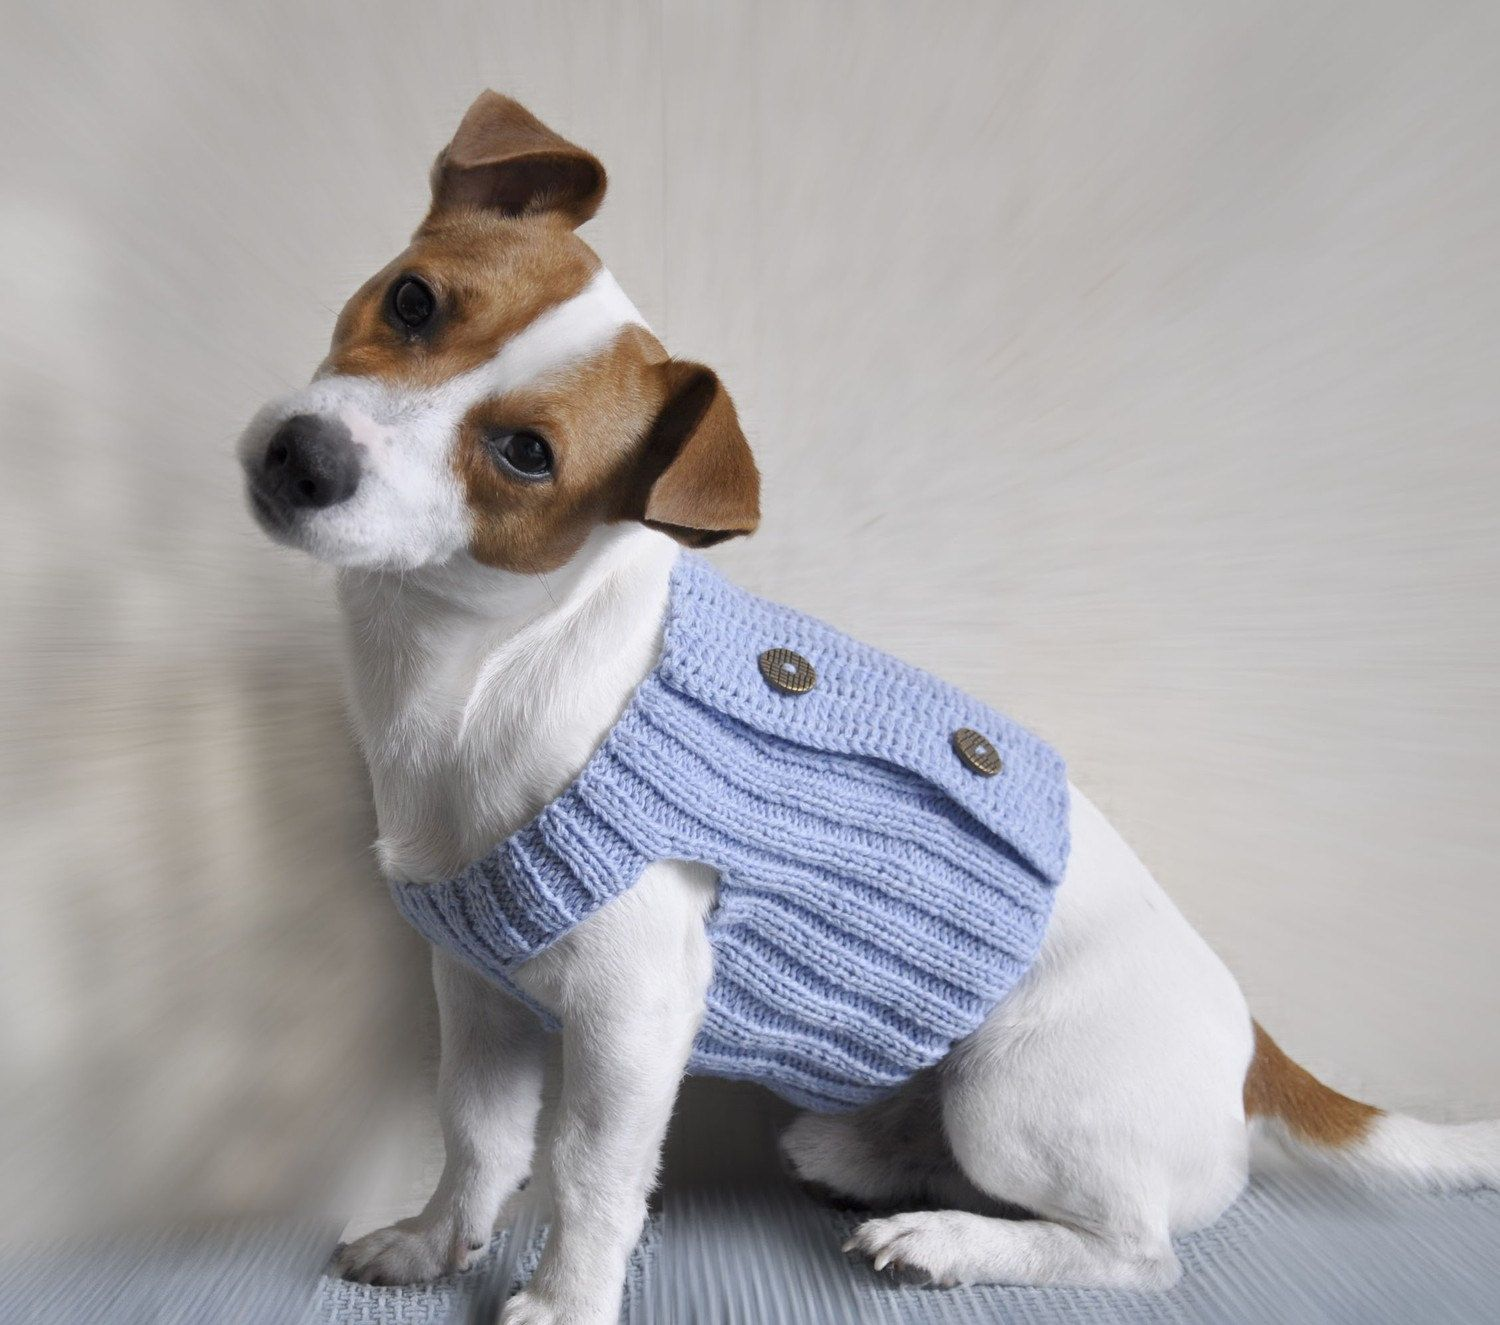 Knitted Dog Sweater Patterns Free : Knitting Pattern, Dog Sweater Pattern, Knit Dog Sweater Pattern, Dog Clothes ...